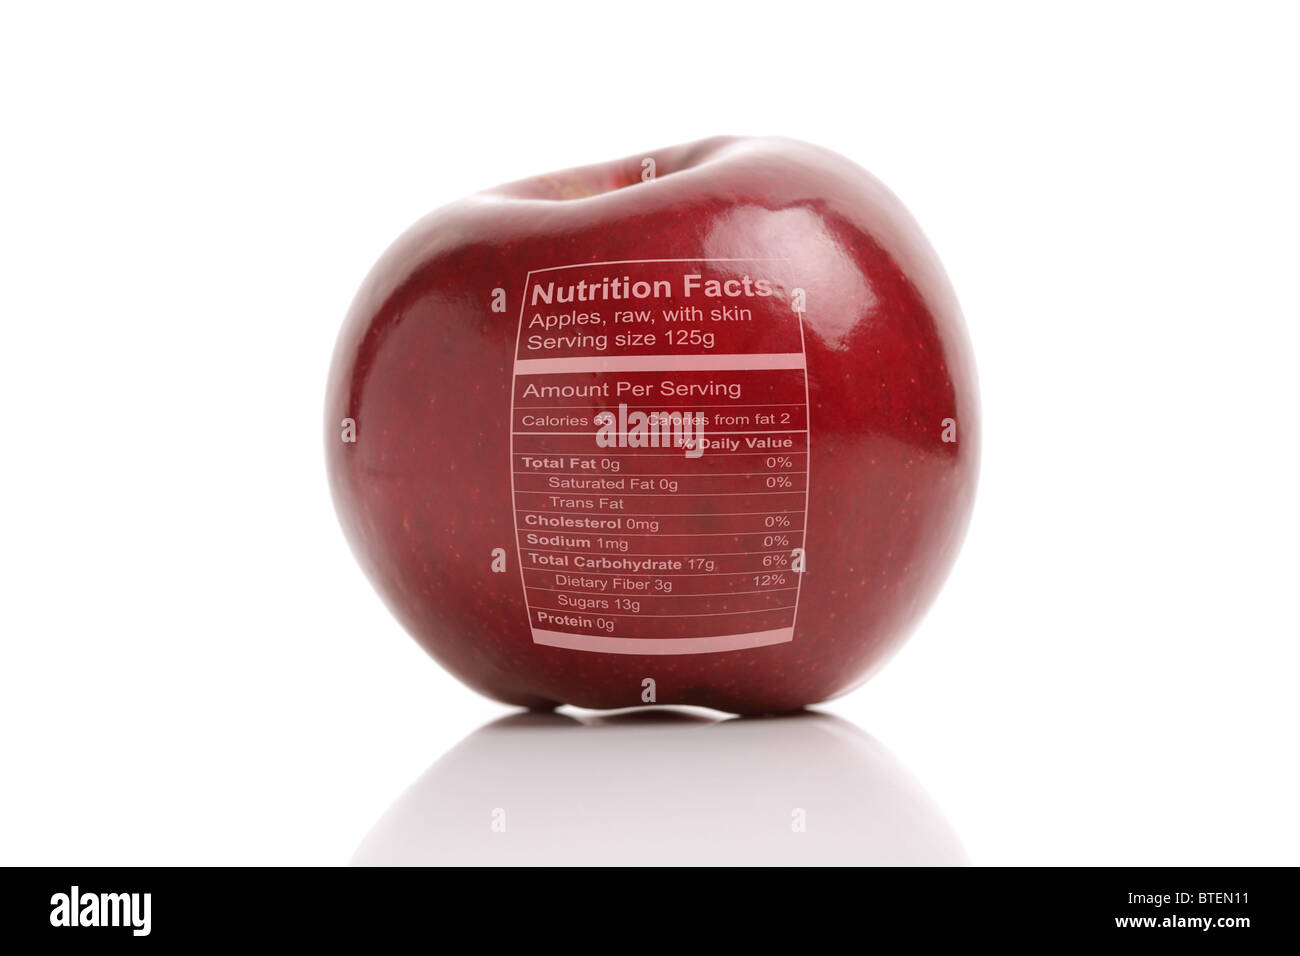 Apple with nutrition facts - Stock Image